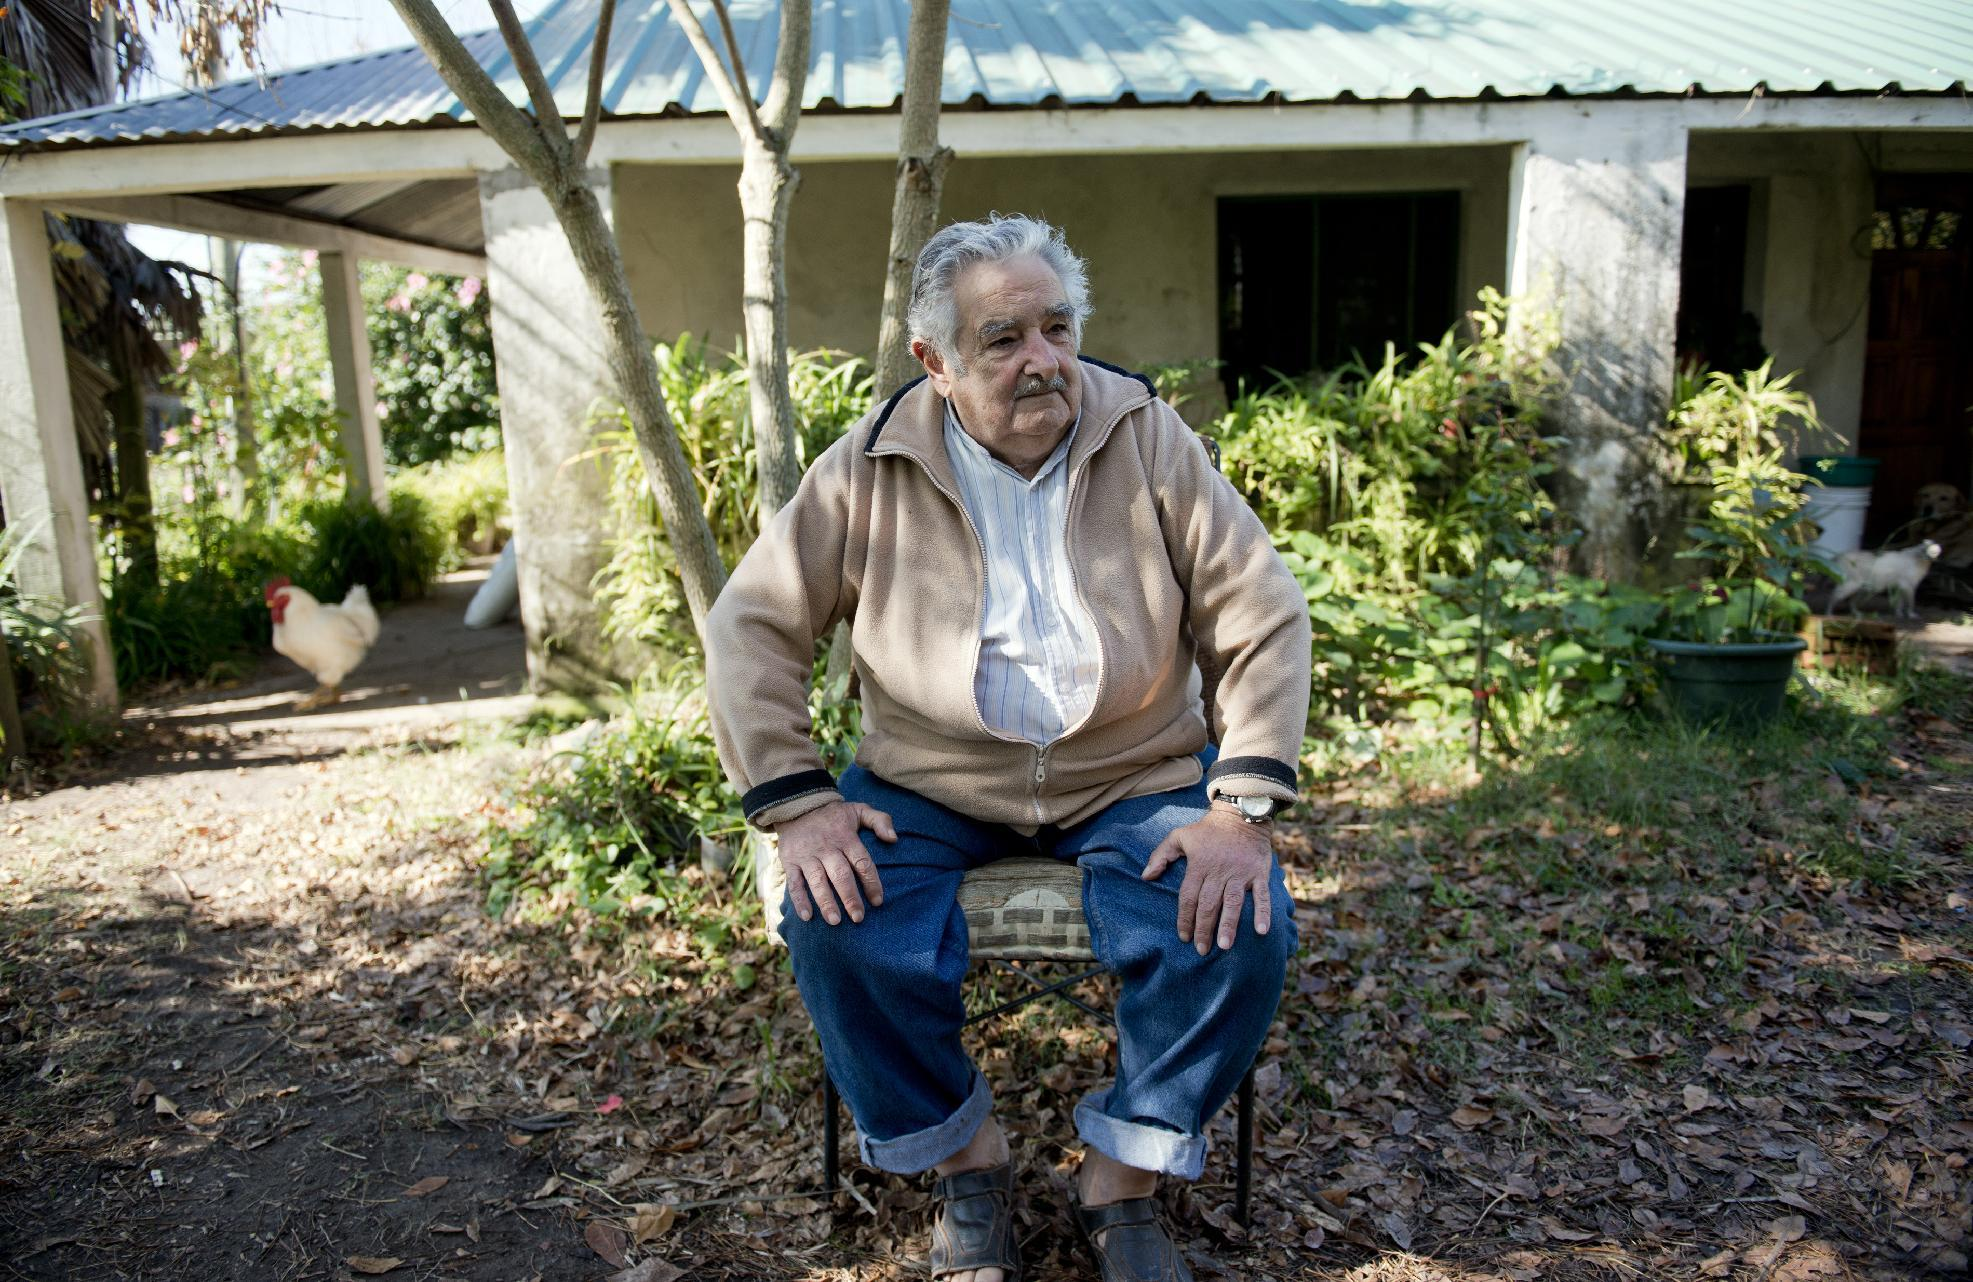 """Uruguay's President Jose Mujica sits outside his home during an interview on the outskirts of Montevideo, Uruguay, Friday, May 2, 2014. Mujica said Friday that his country's legal marijuana market will be much better than Colorado's, where he says the rules are based on """"fiction"""" and """"hypocrisy"""" because the state loses track of the drug once it's sold and many people fake illnesses to get prescription weed. Mujica says this won't be allowed in Uruguay, where the licensed and regulated market will be much less permissive with drug users. (AP Photo/Matilde Campodonico)"""